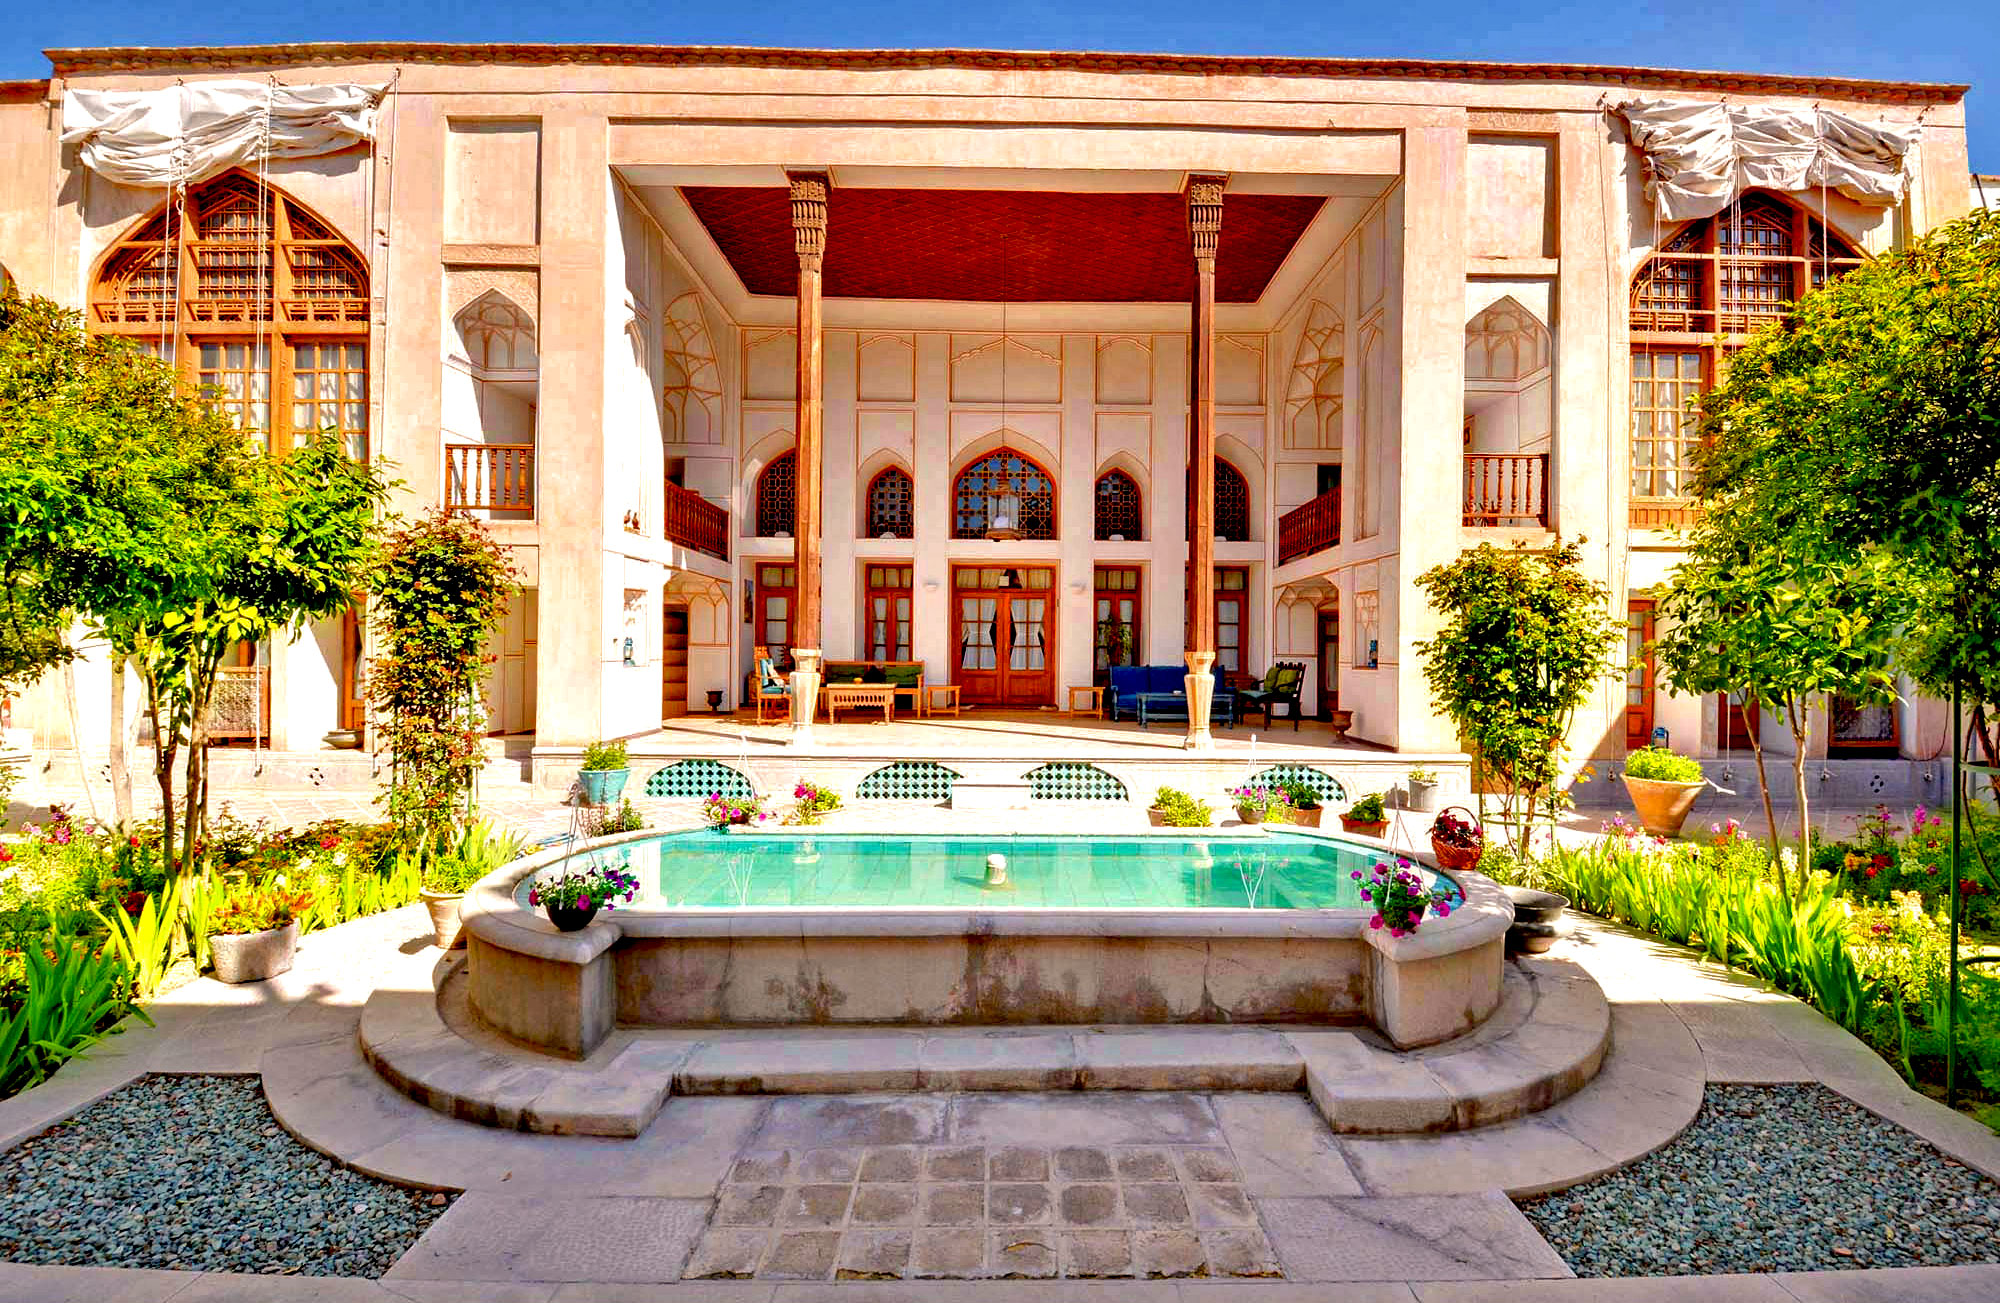 IRAN Tour Services